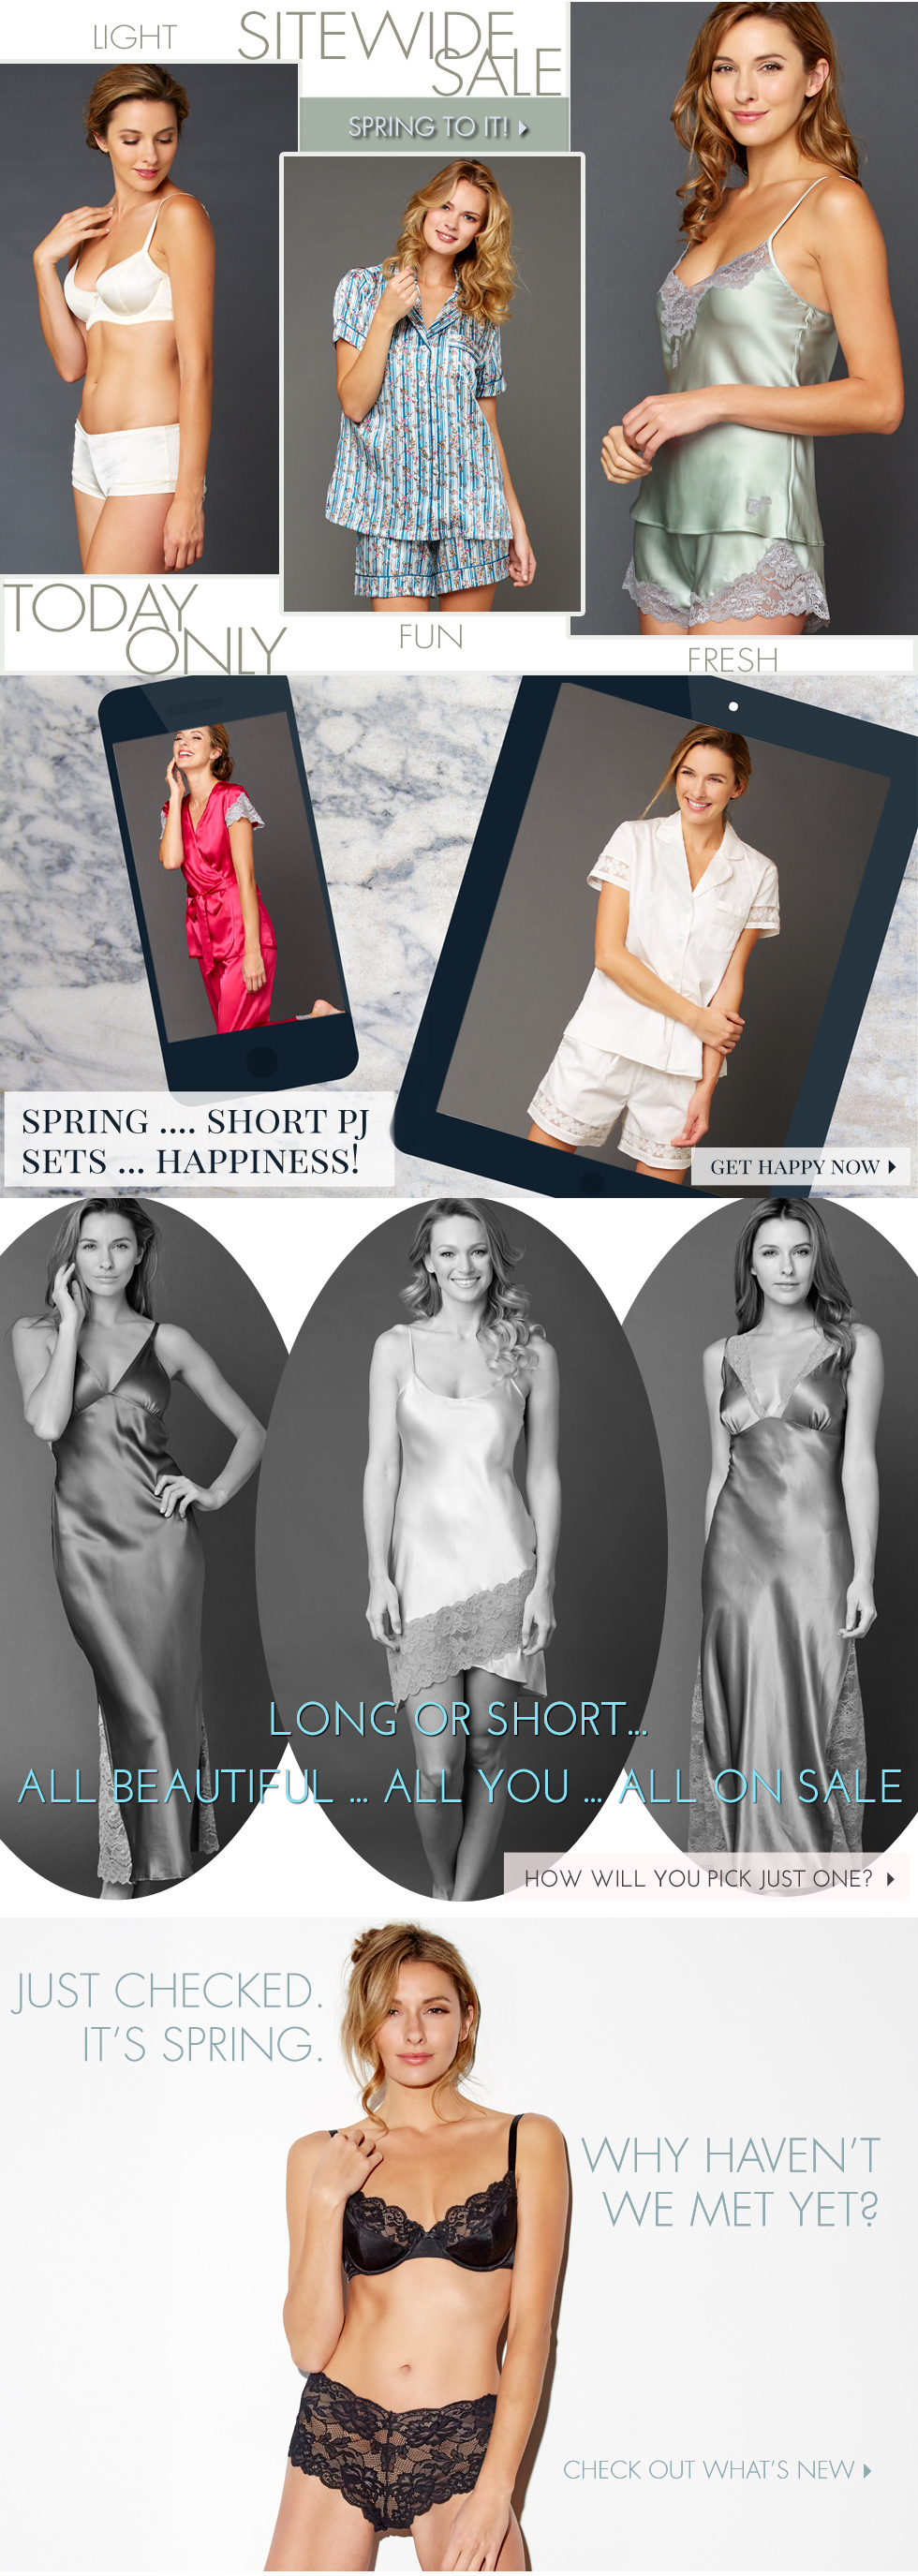 Welcome Spring with lingerie must haves - now on sale!